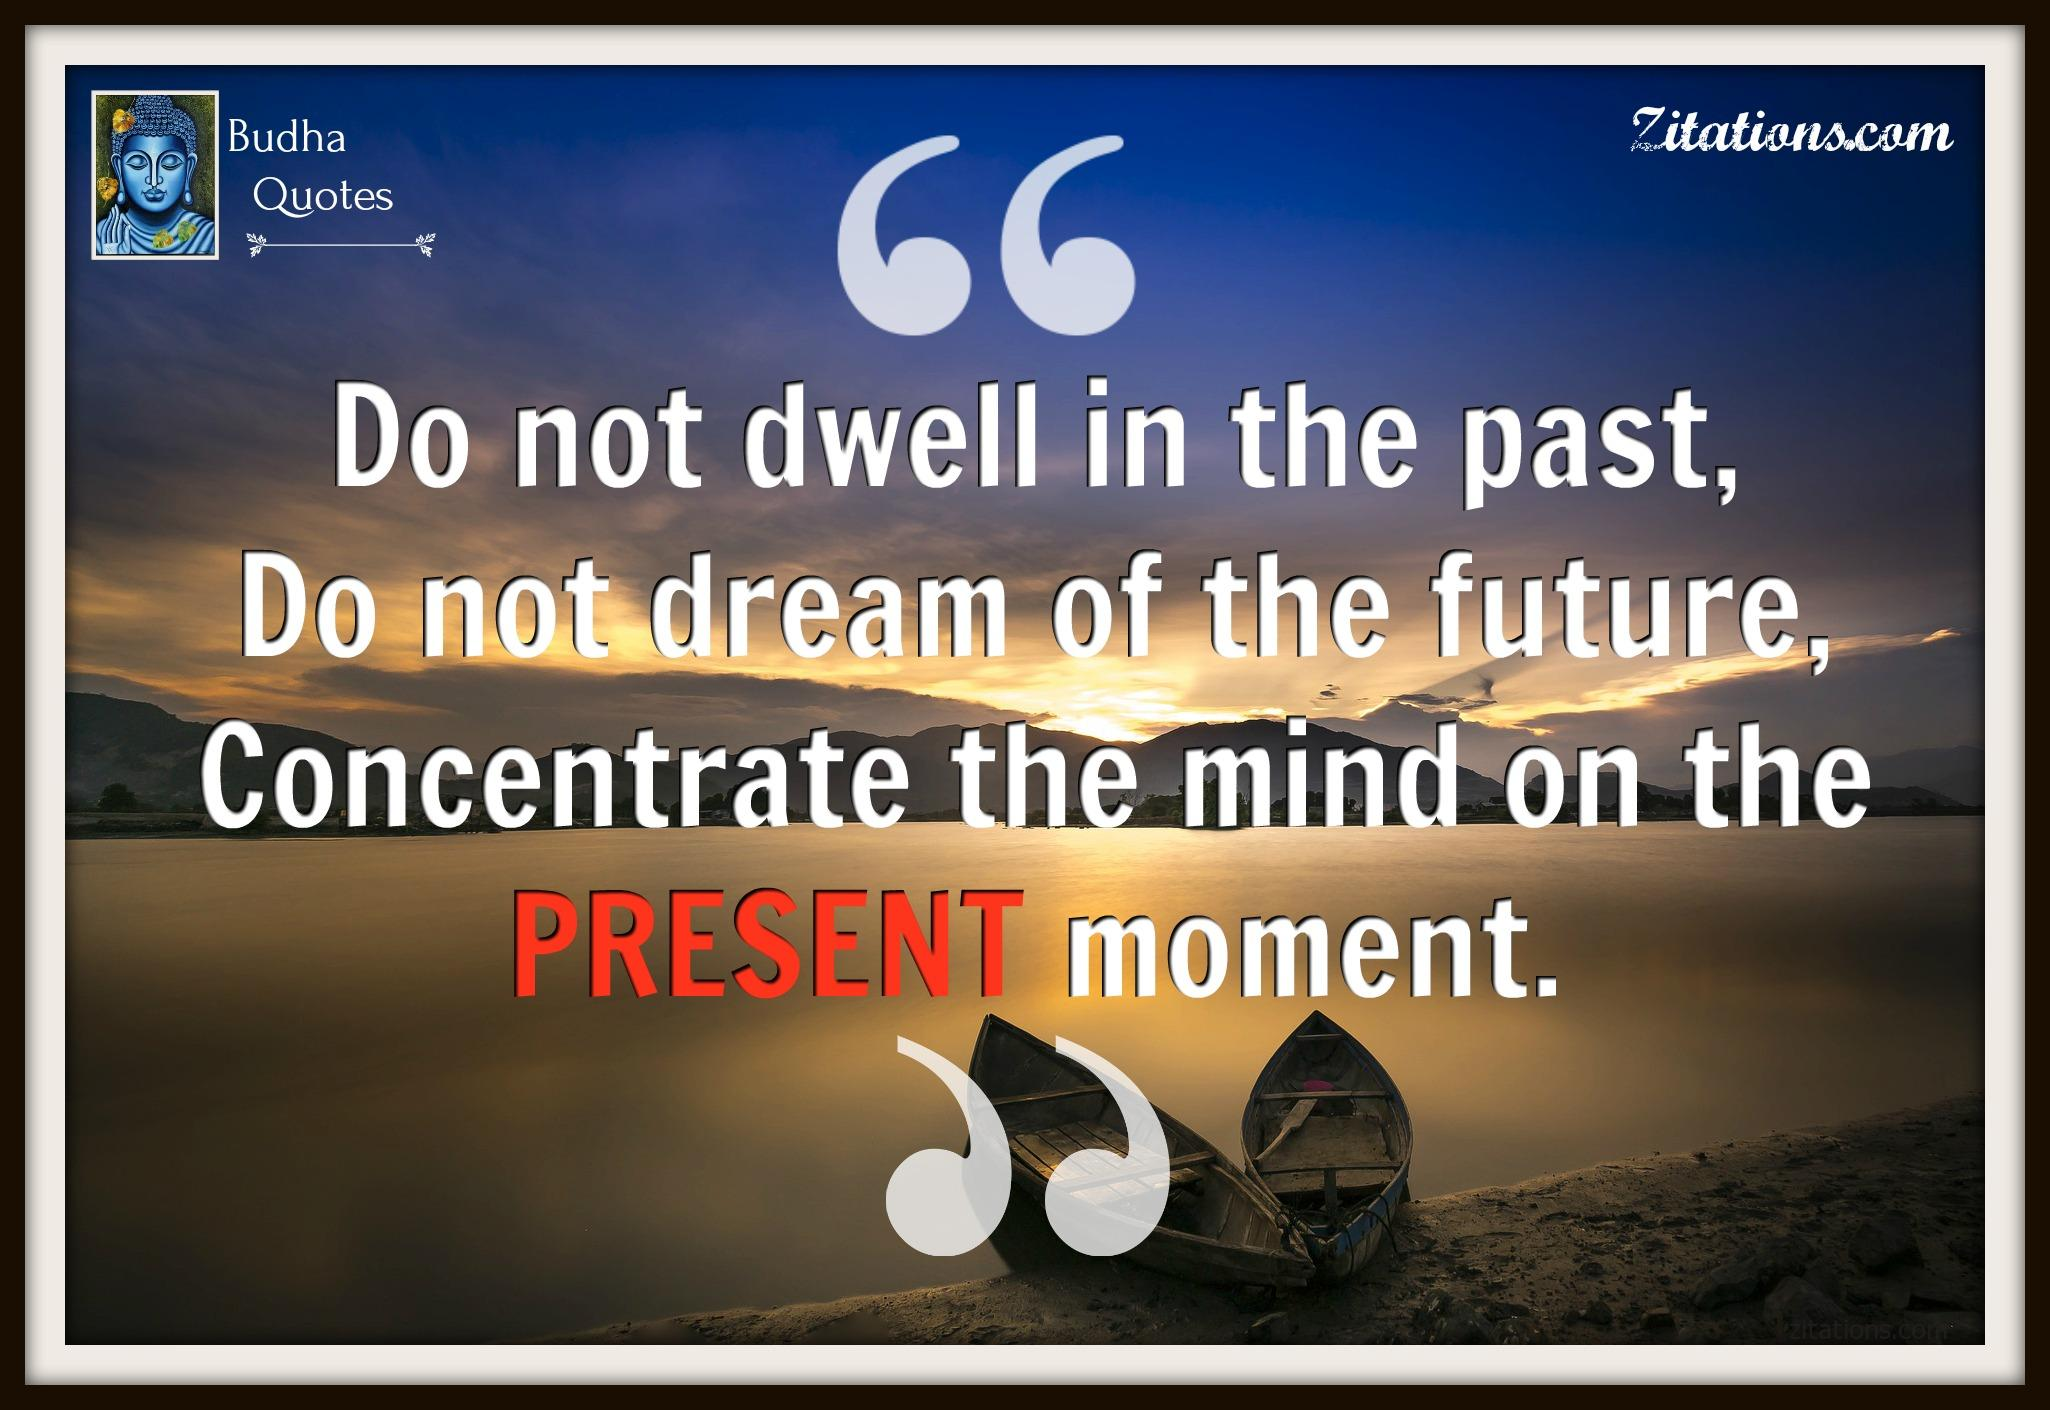 live in the moment quotes - Budha Quotes